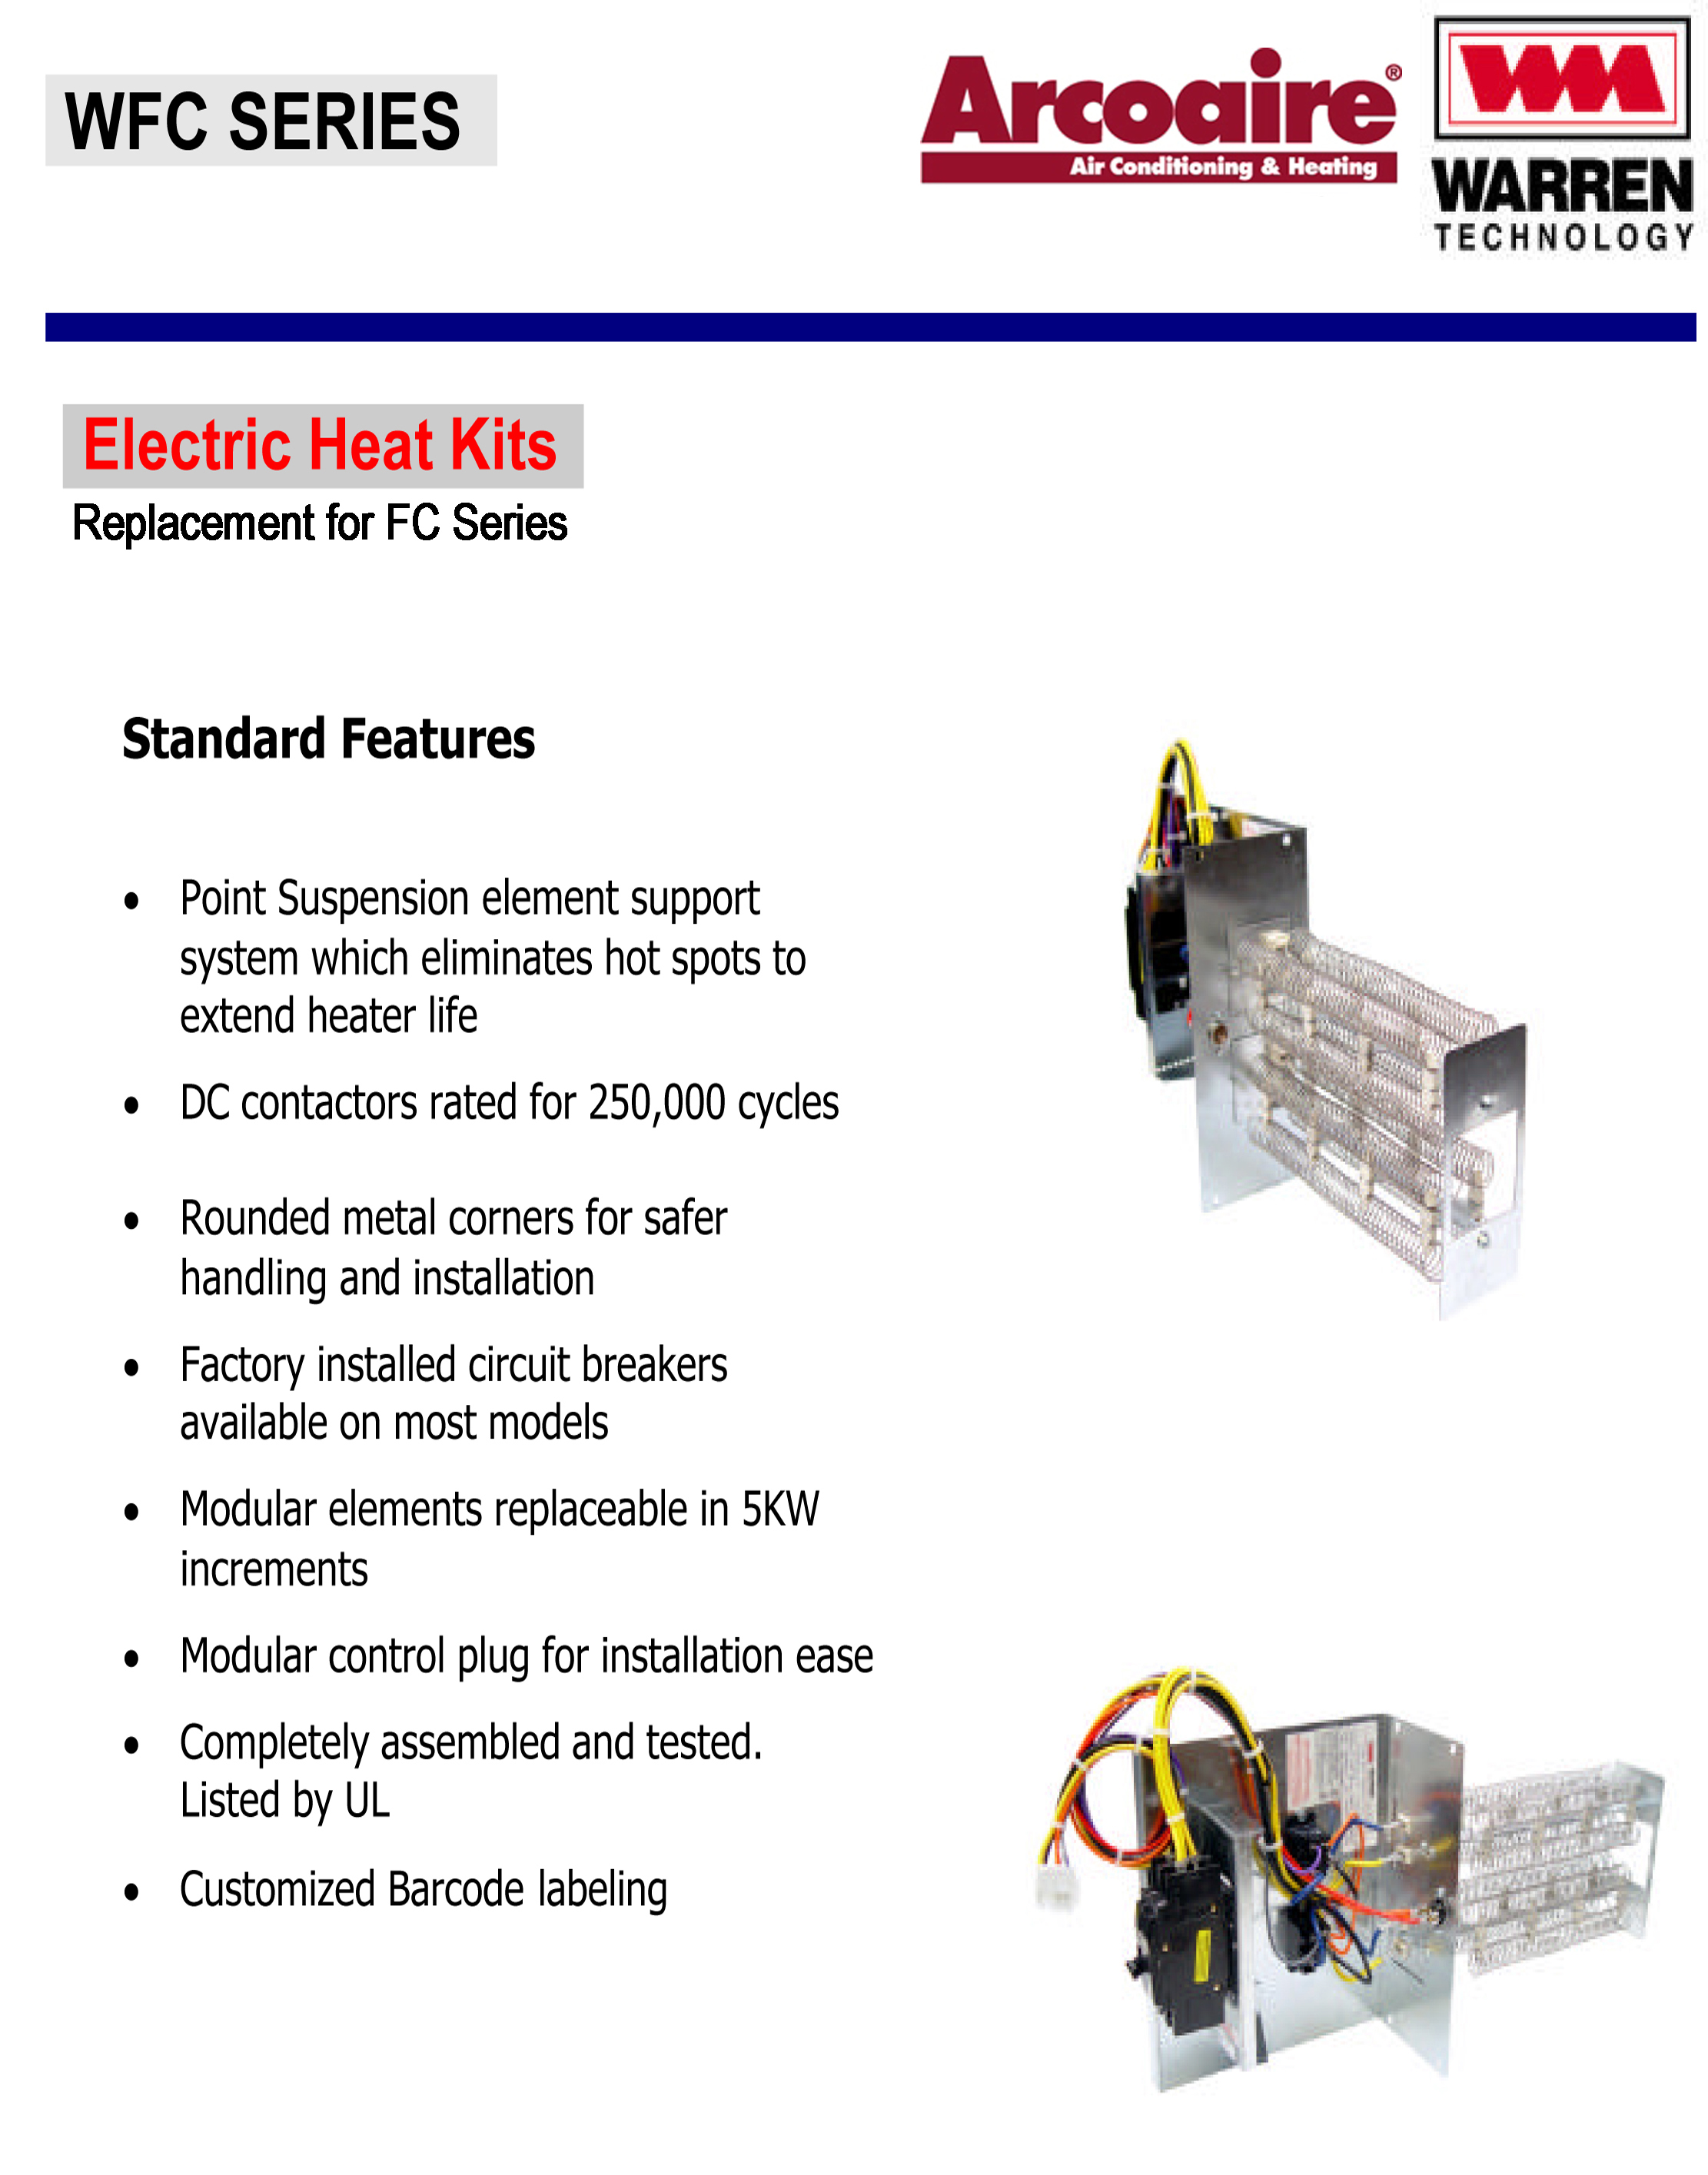 arcoaire wfc brochure copy 15 kw breakered heat strip for arcoaire air handlers fcv, fcp, fcx heat strip wiring diagram at gsmx.co